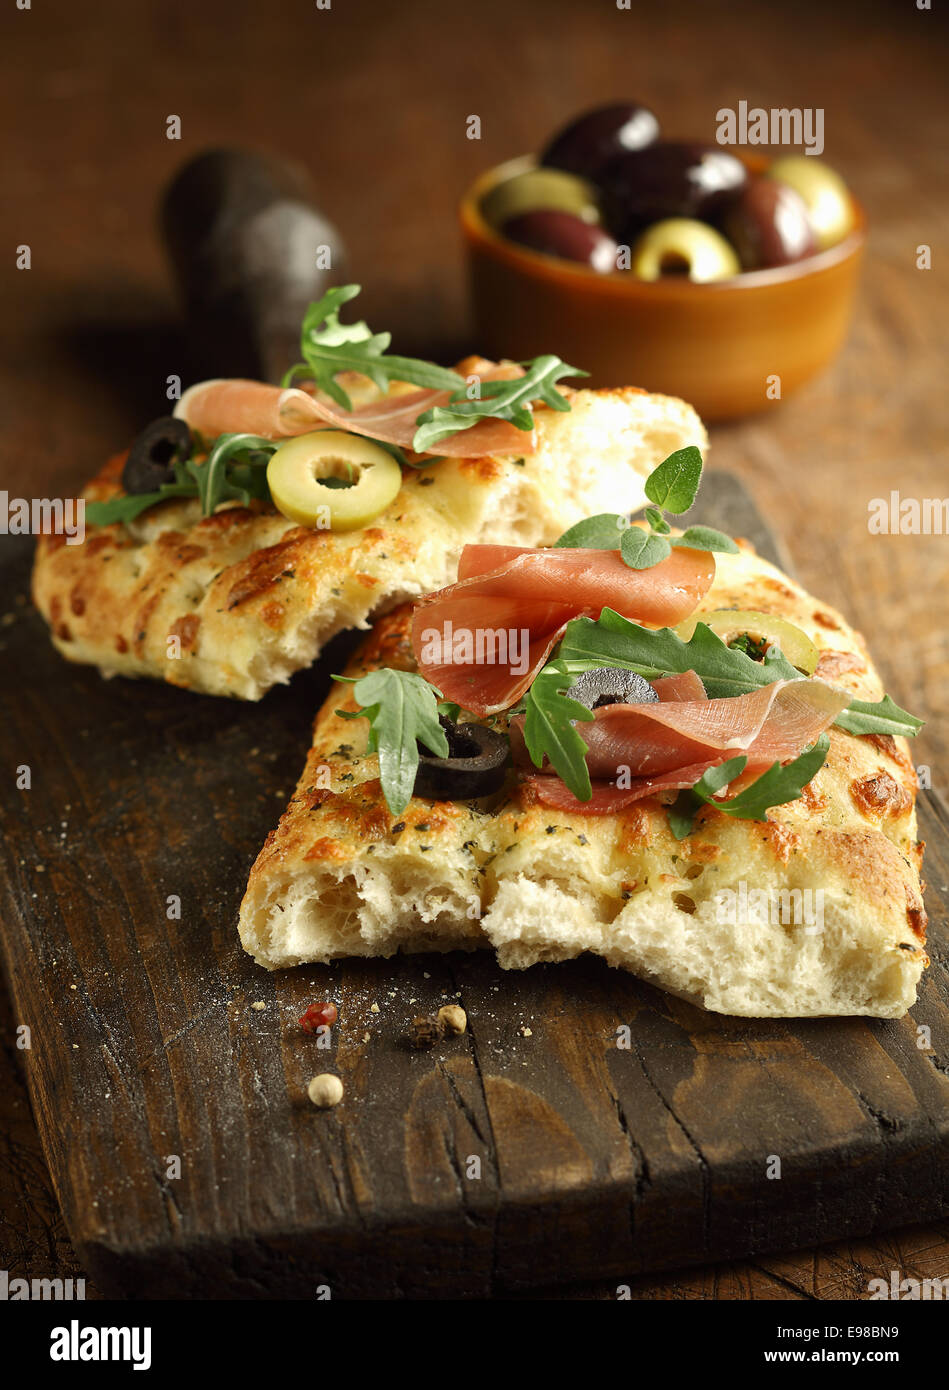 Delicous traditional oven-baked Italian focaccia bread topped with ham, rocket and olives on old cracked wooden - Stock Image